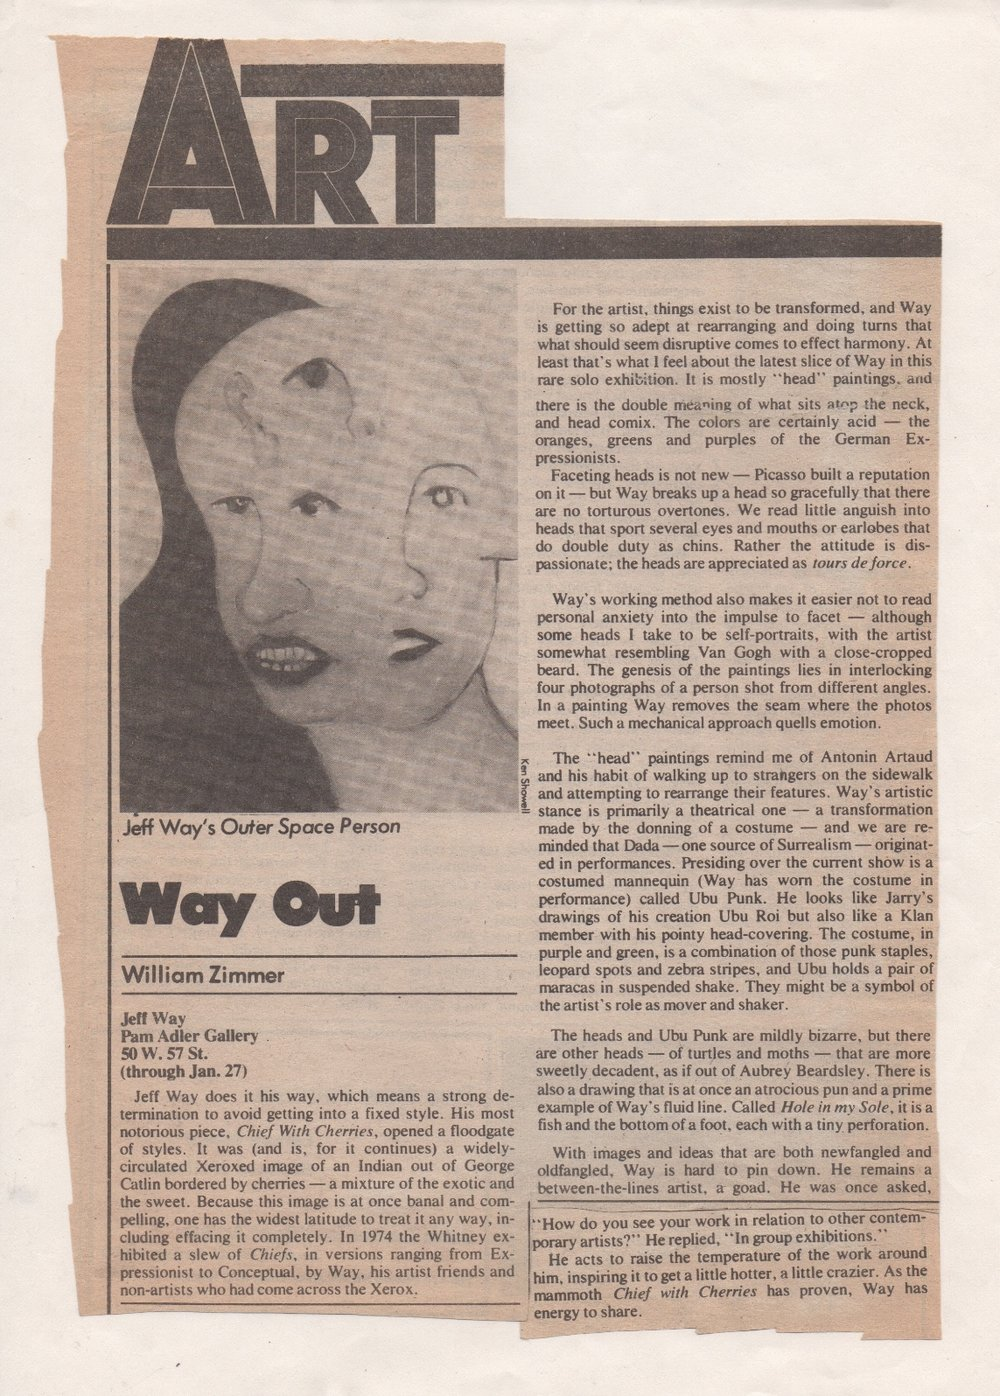 Way Out, Zimmer Williams, Soho Weekly News 1976